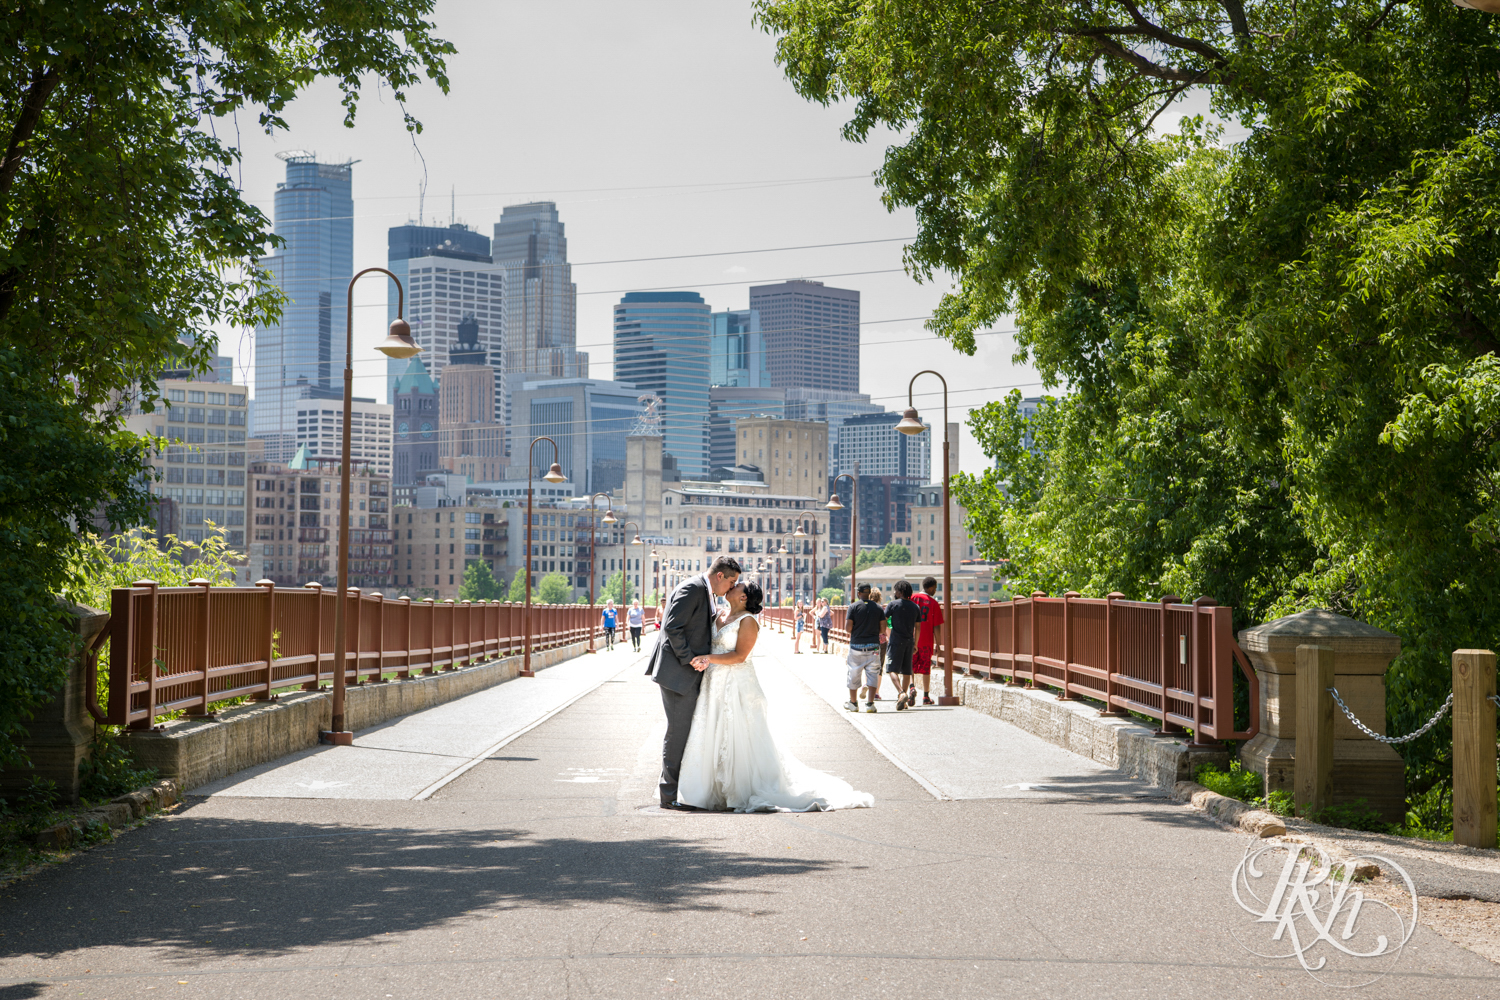 Jana and Paul - Minnesota Wedding Photography - Kellerman's Event Center - RKH Images  (35 of 77).jpg